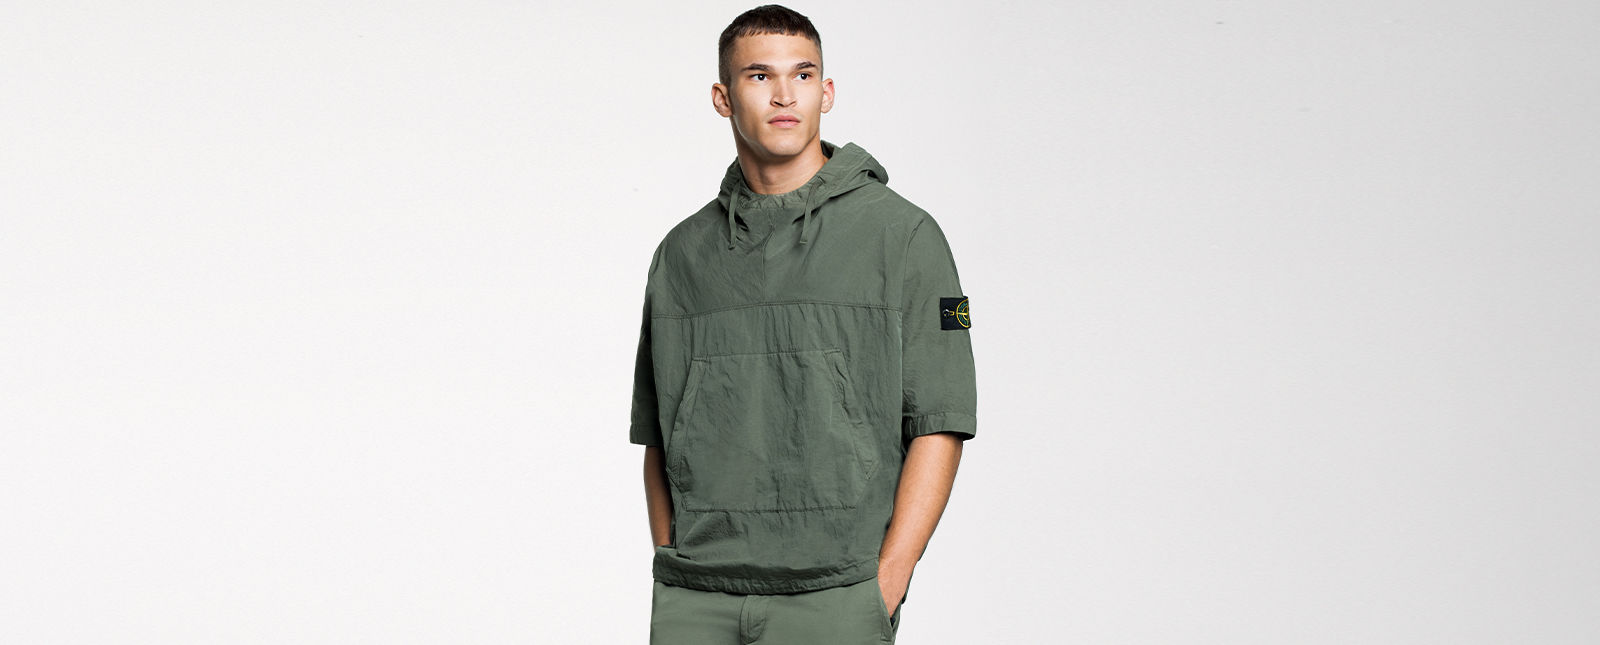 Model wearing a green short sleeved hooded overshirt with central pouch pocket and the Stone Island badge on the left sleeve.